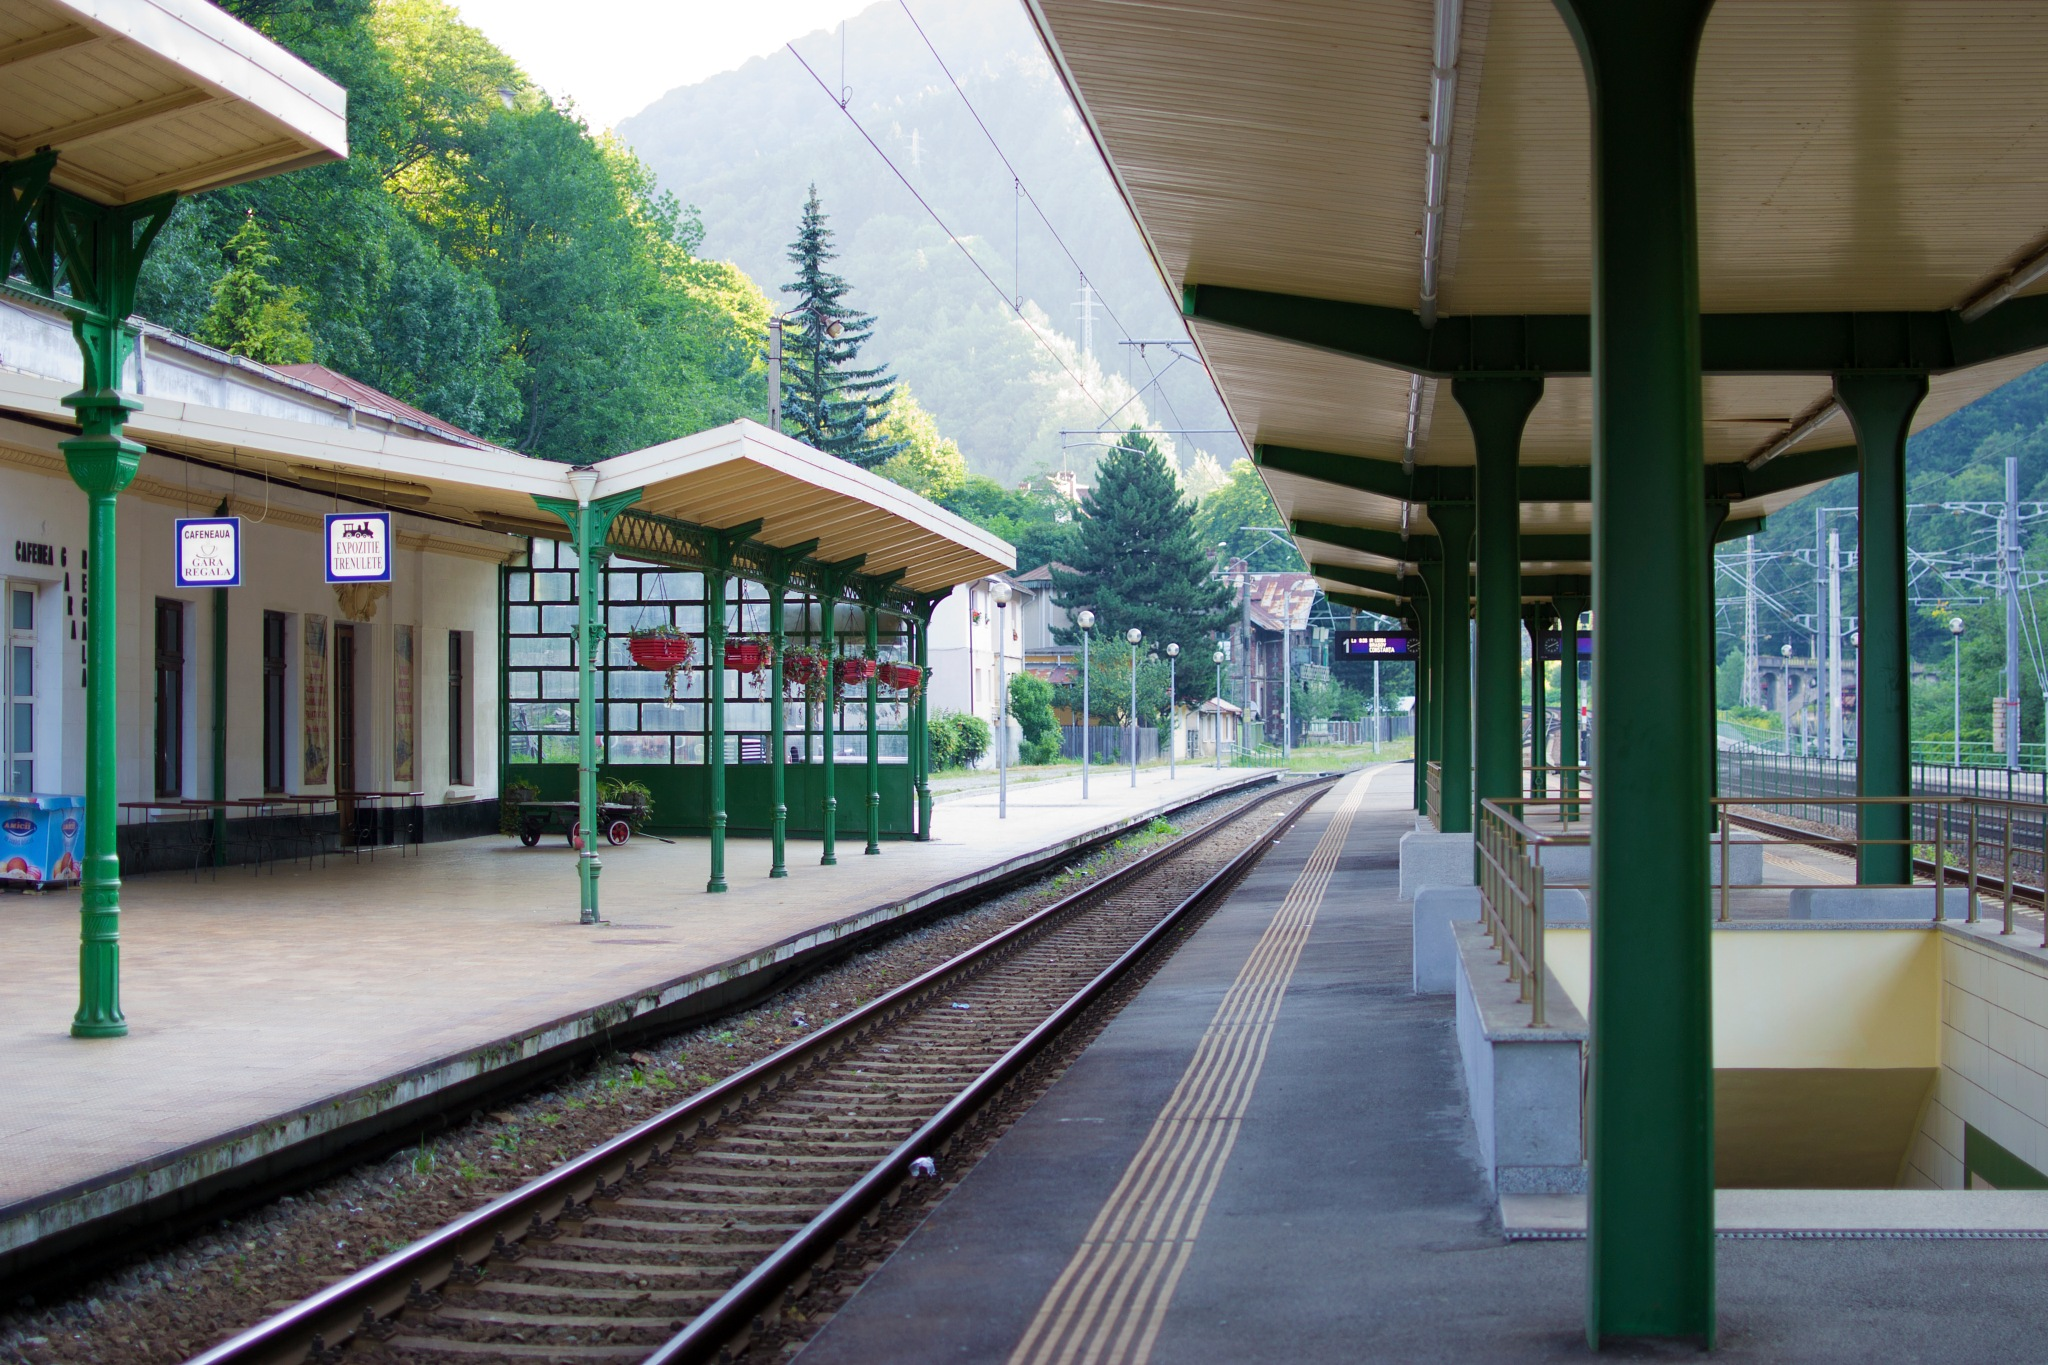 Waiting for a romanian train by miid0u